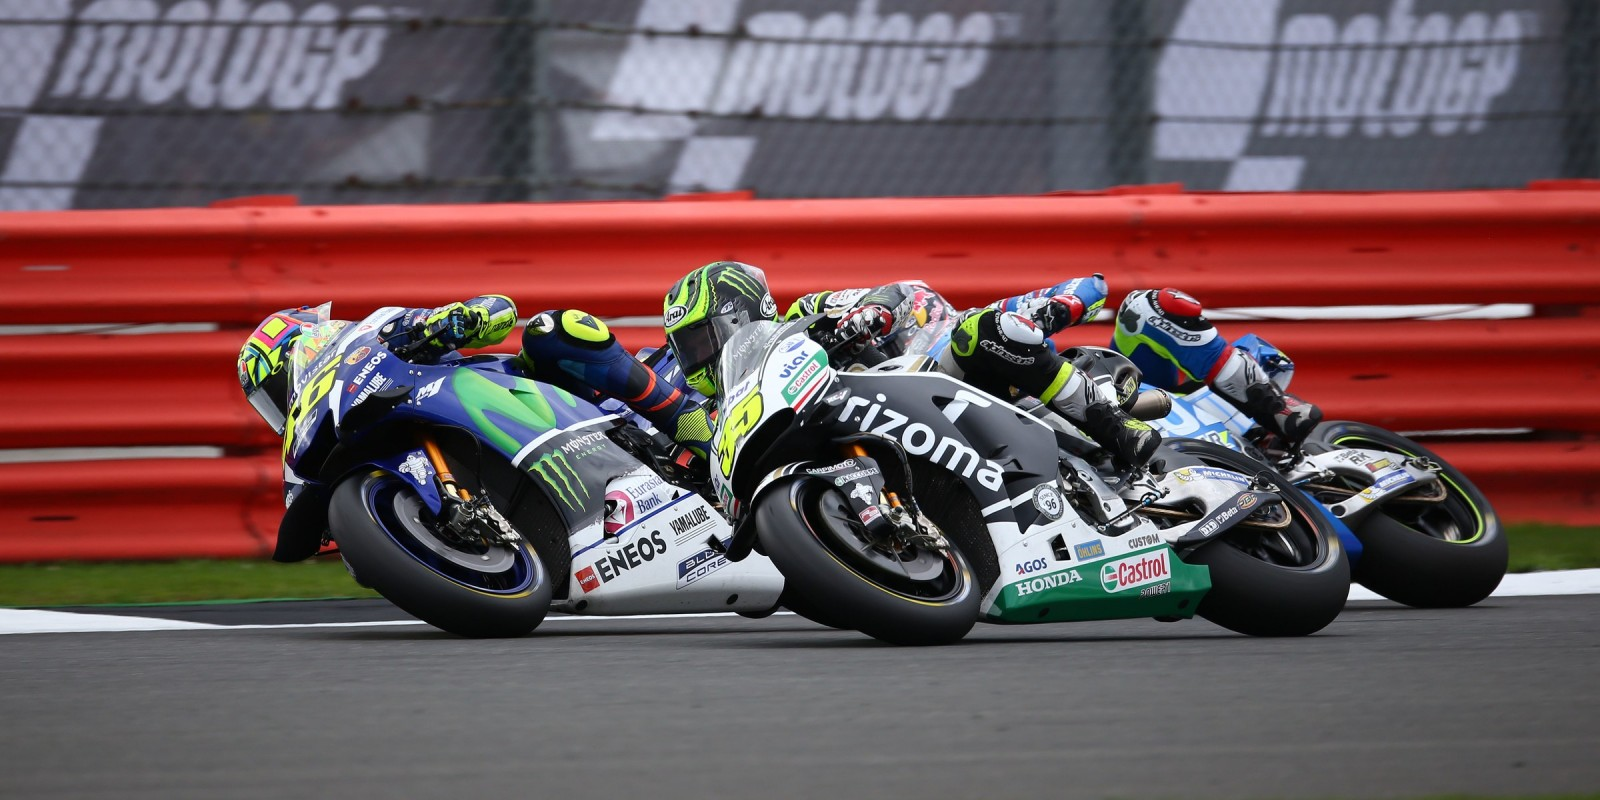 Monster athletes during the 2016 MotoGP season in Silverstone, UK